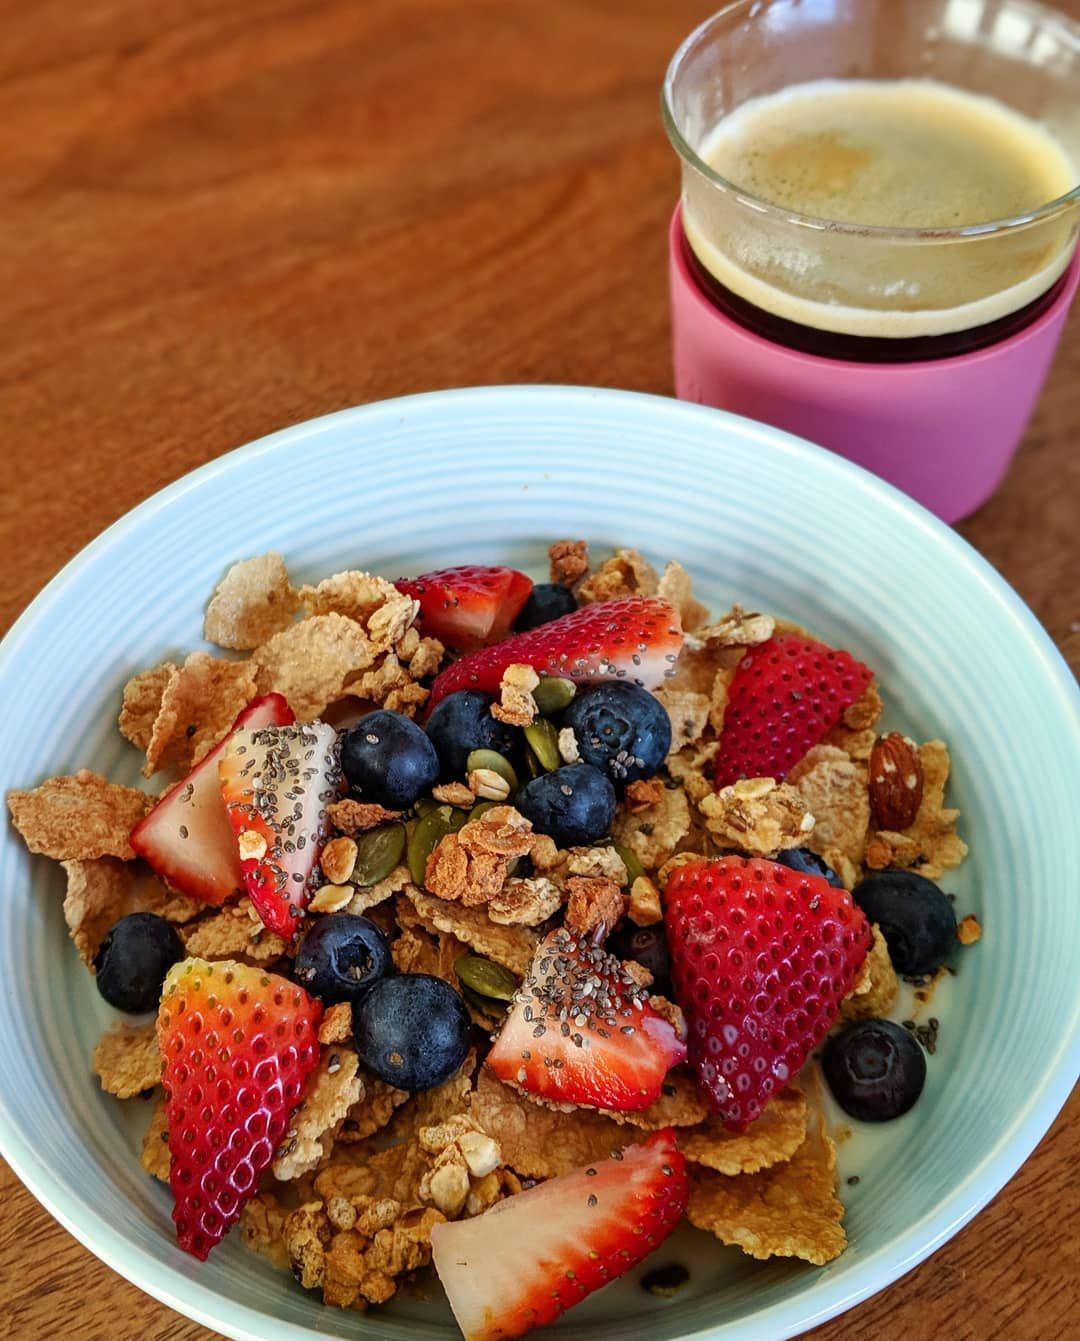 Brekkie bowl  Approximately twice the suggested serving amount of Special K with oat clusters, berri...